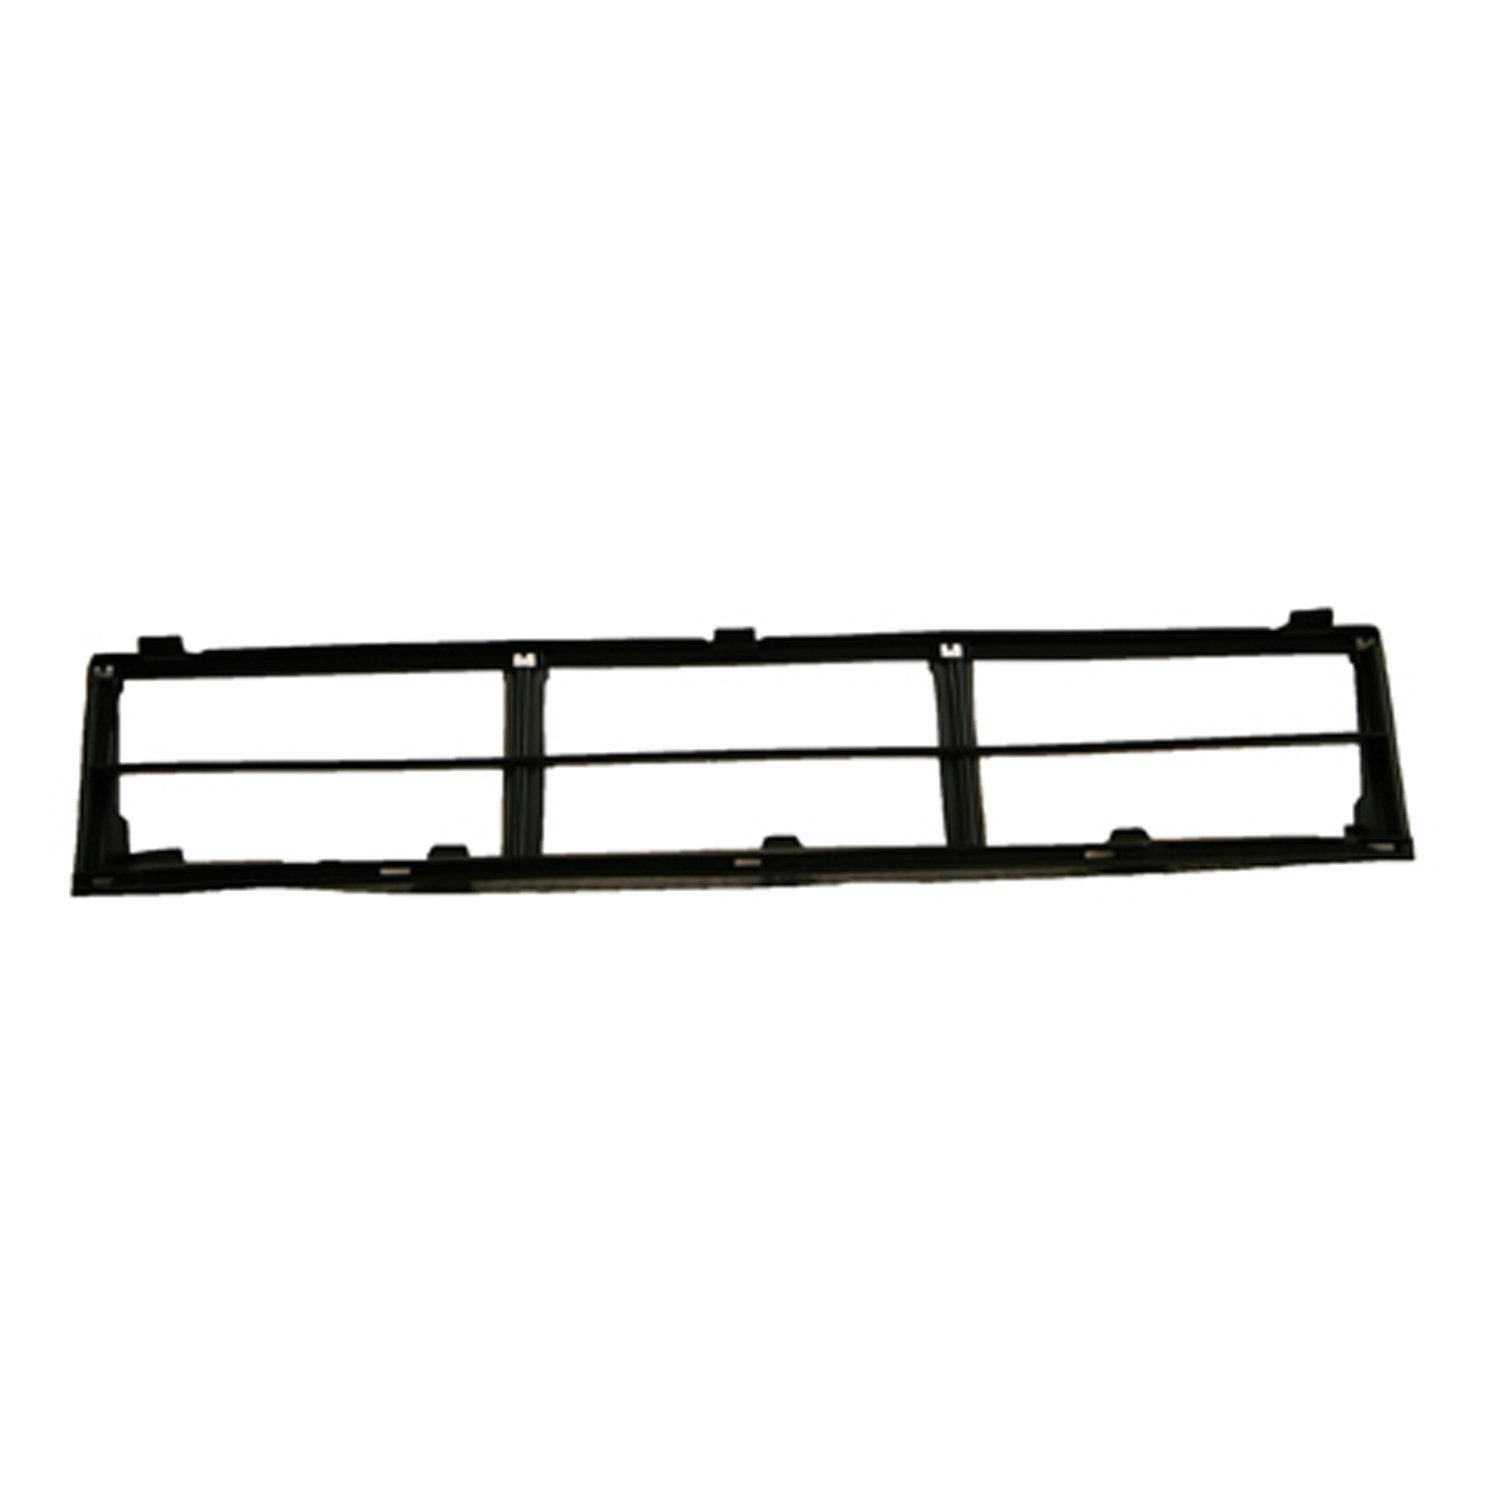 Cheap Bmw 525 Front, find Bmw 525 Front deals on line at